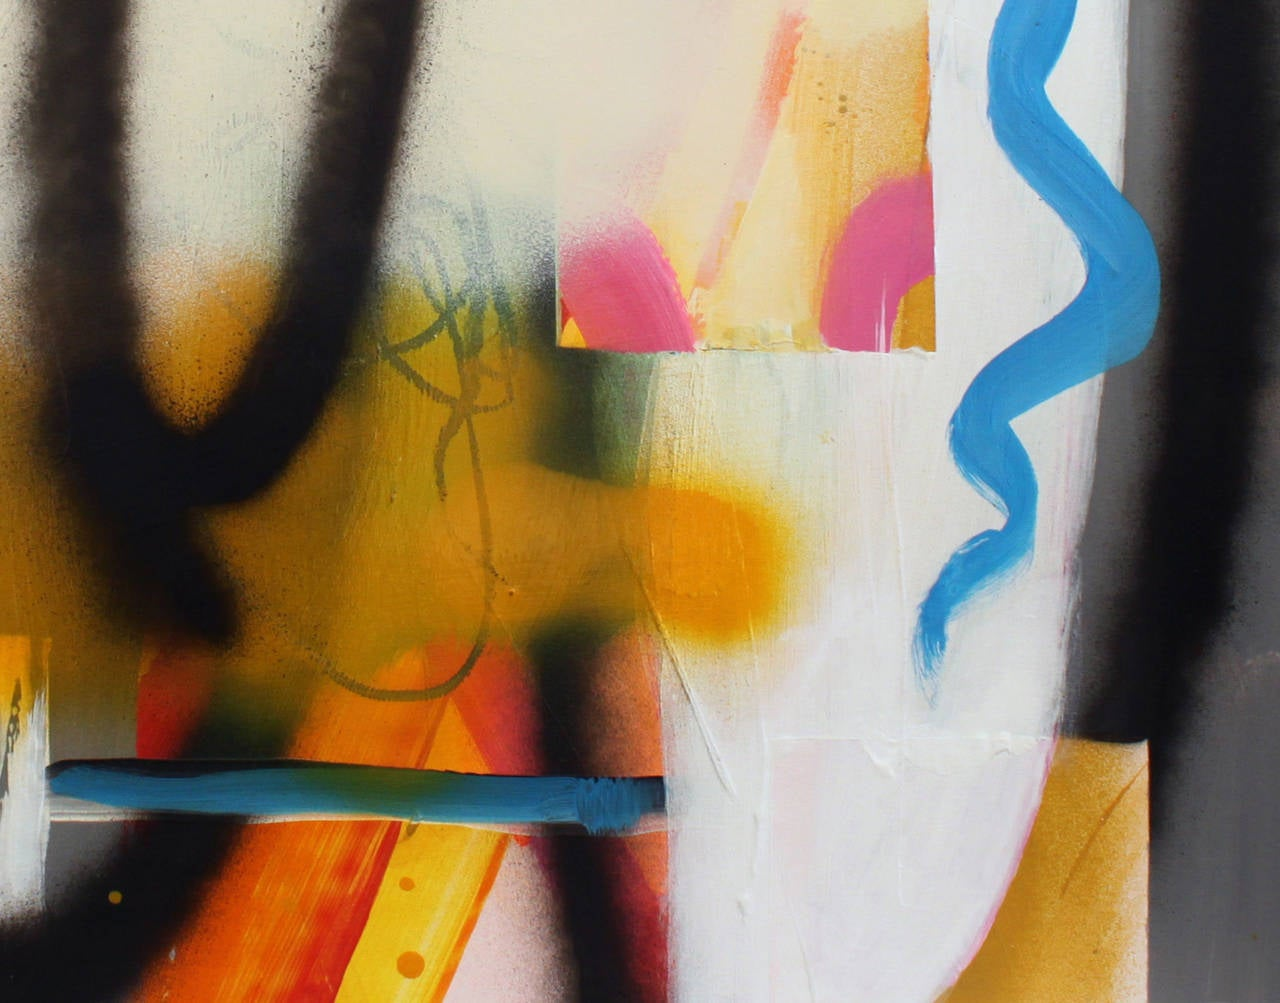 Untitled No 06 - Abstract Painting by Fiona Ackerman